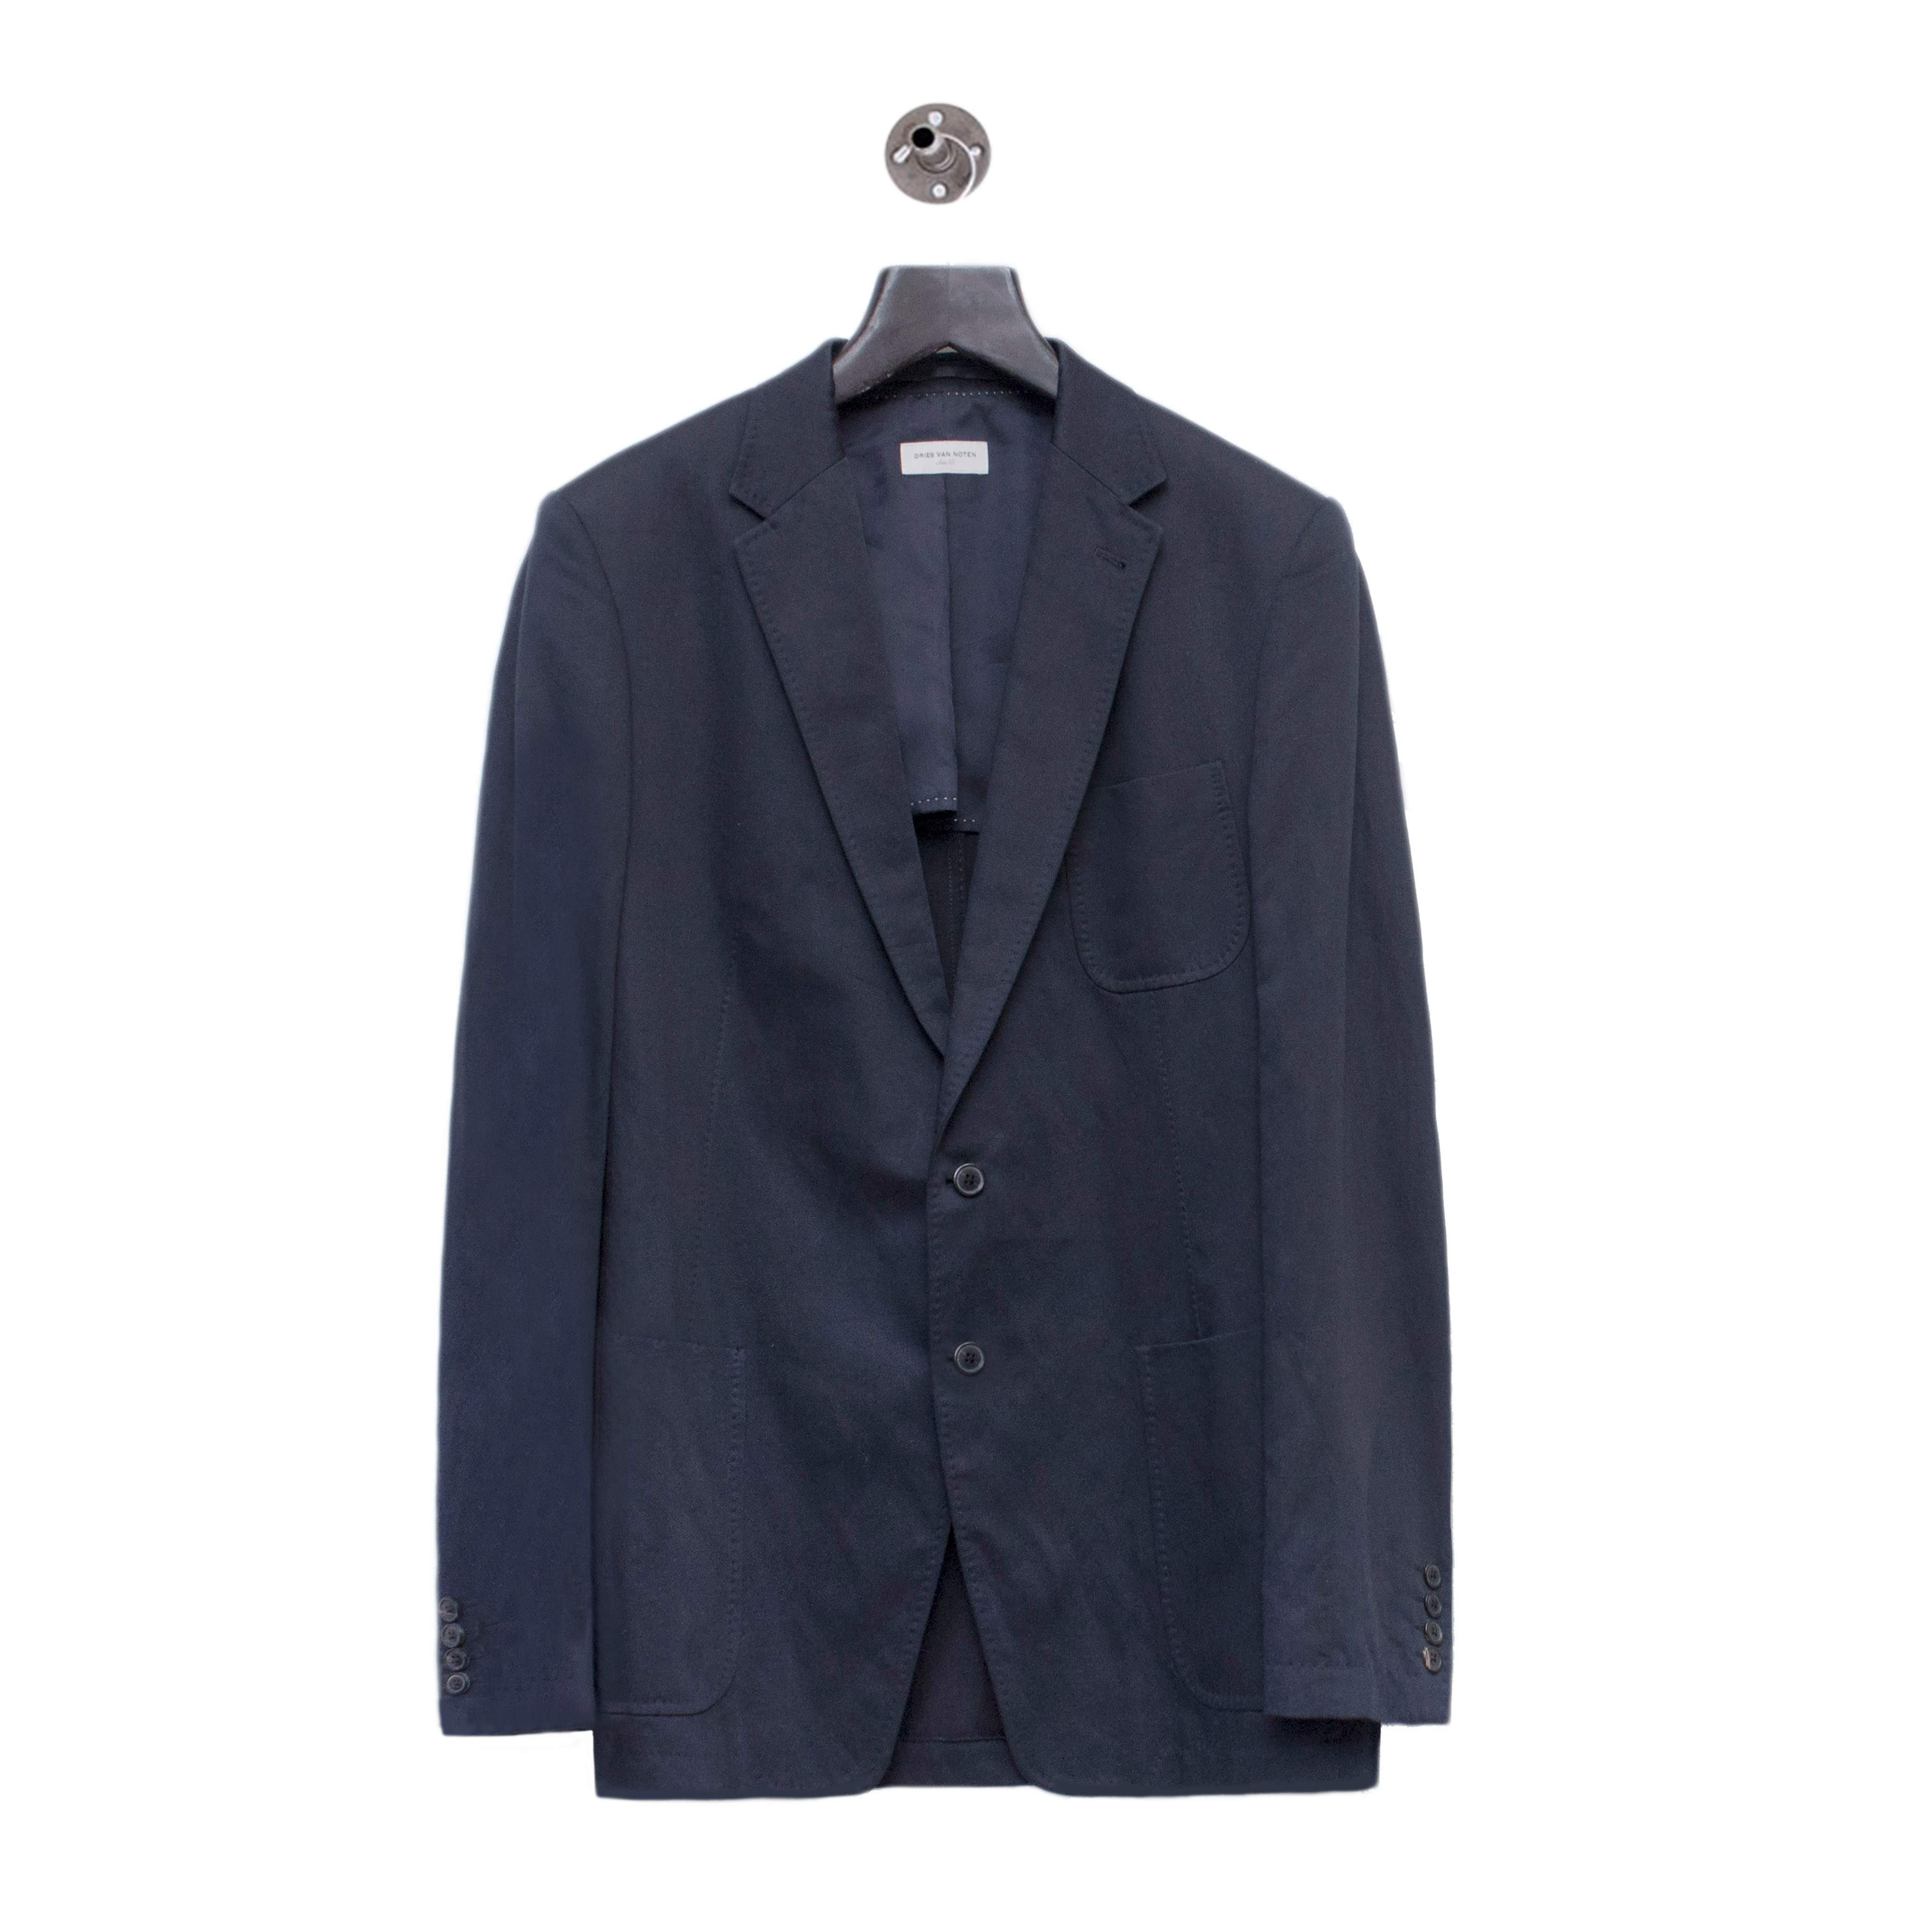 Dries Van Noten dark navy blazer